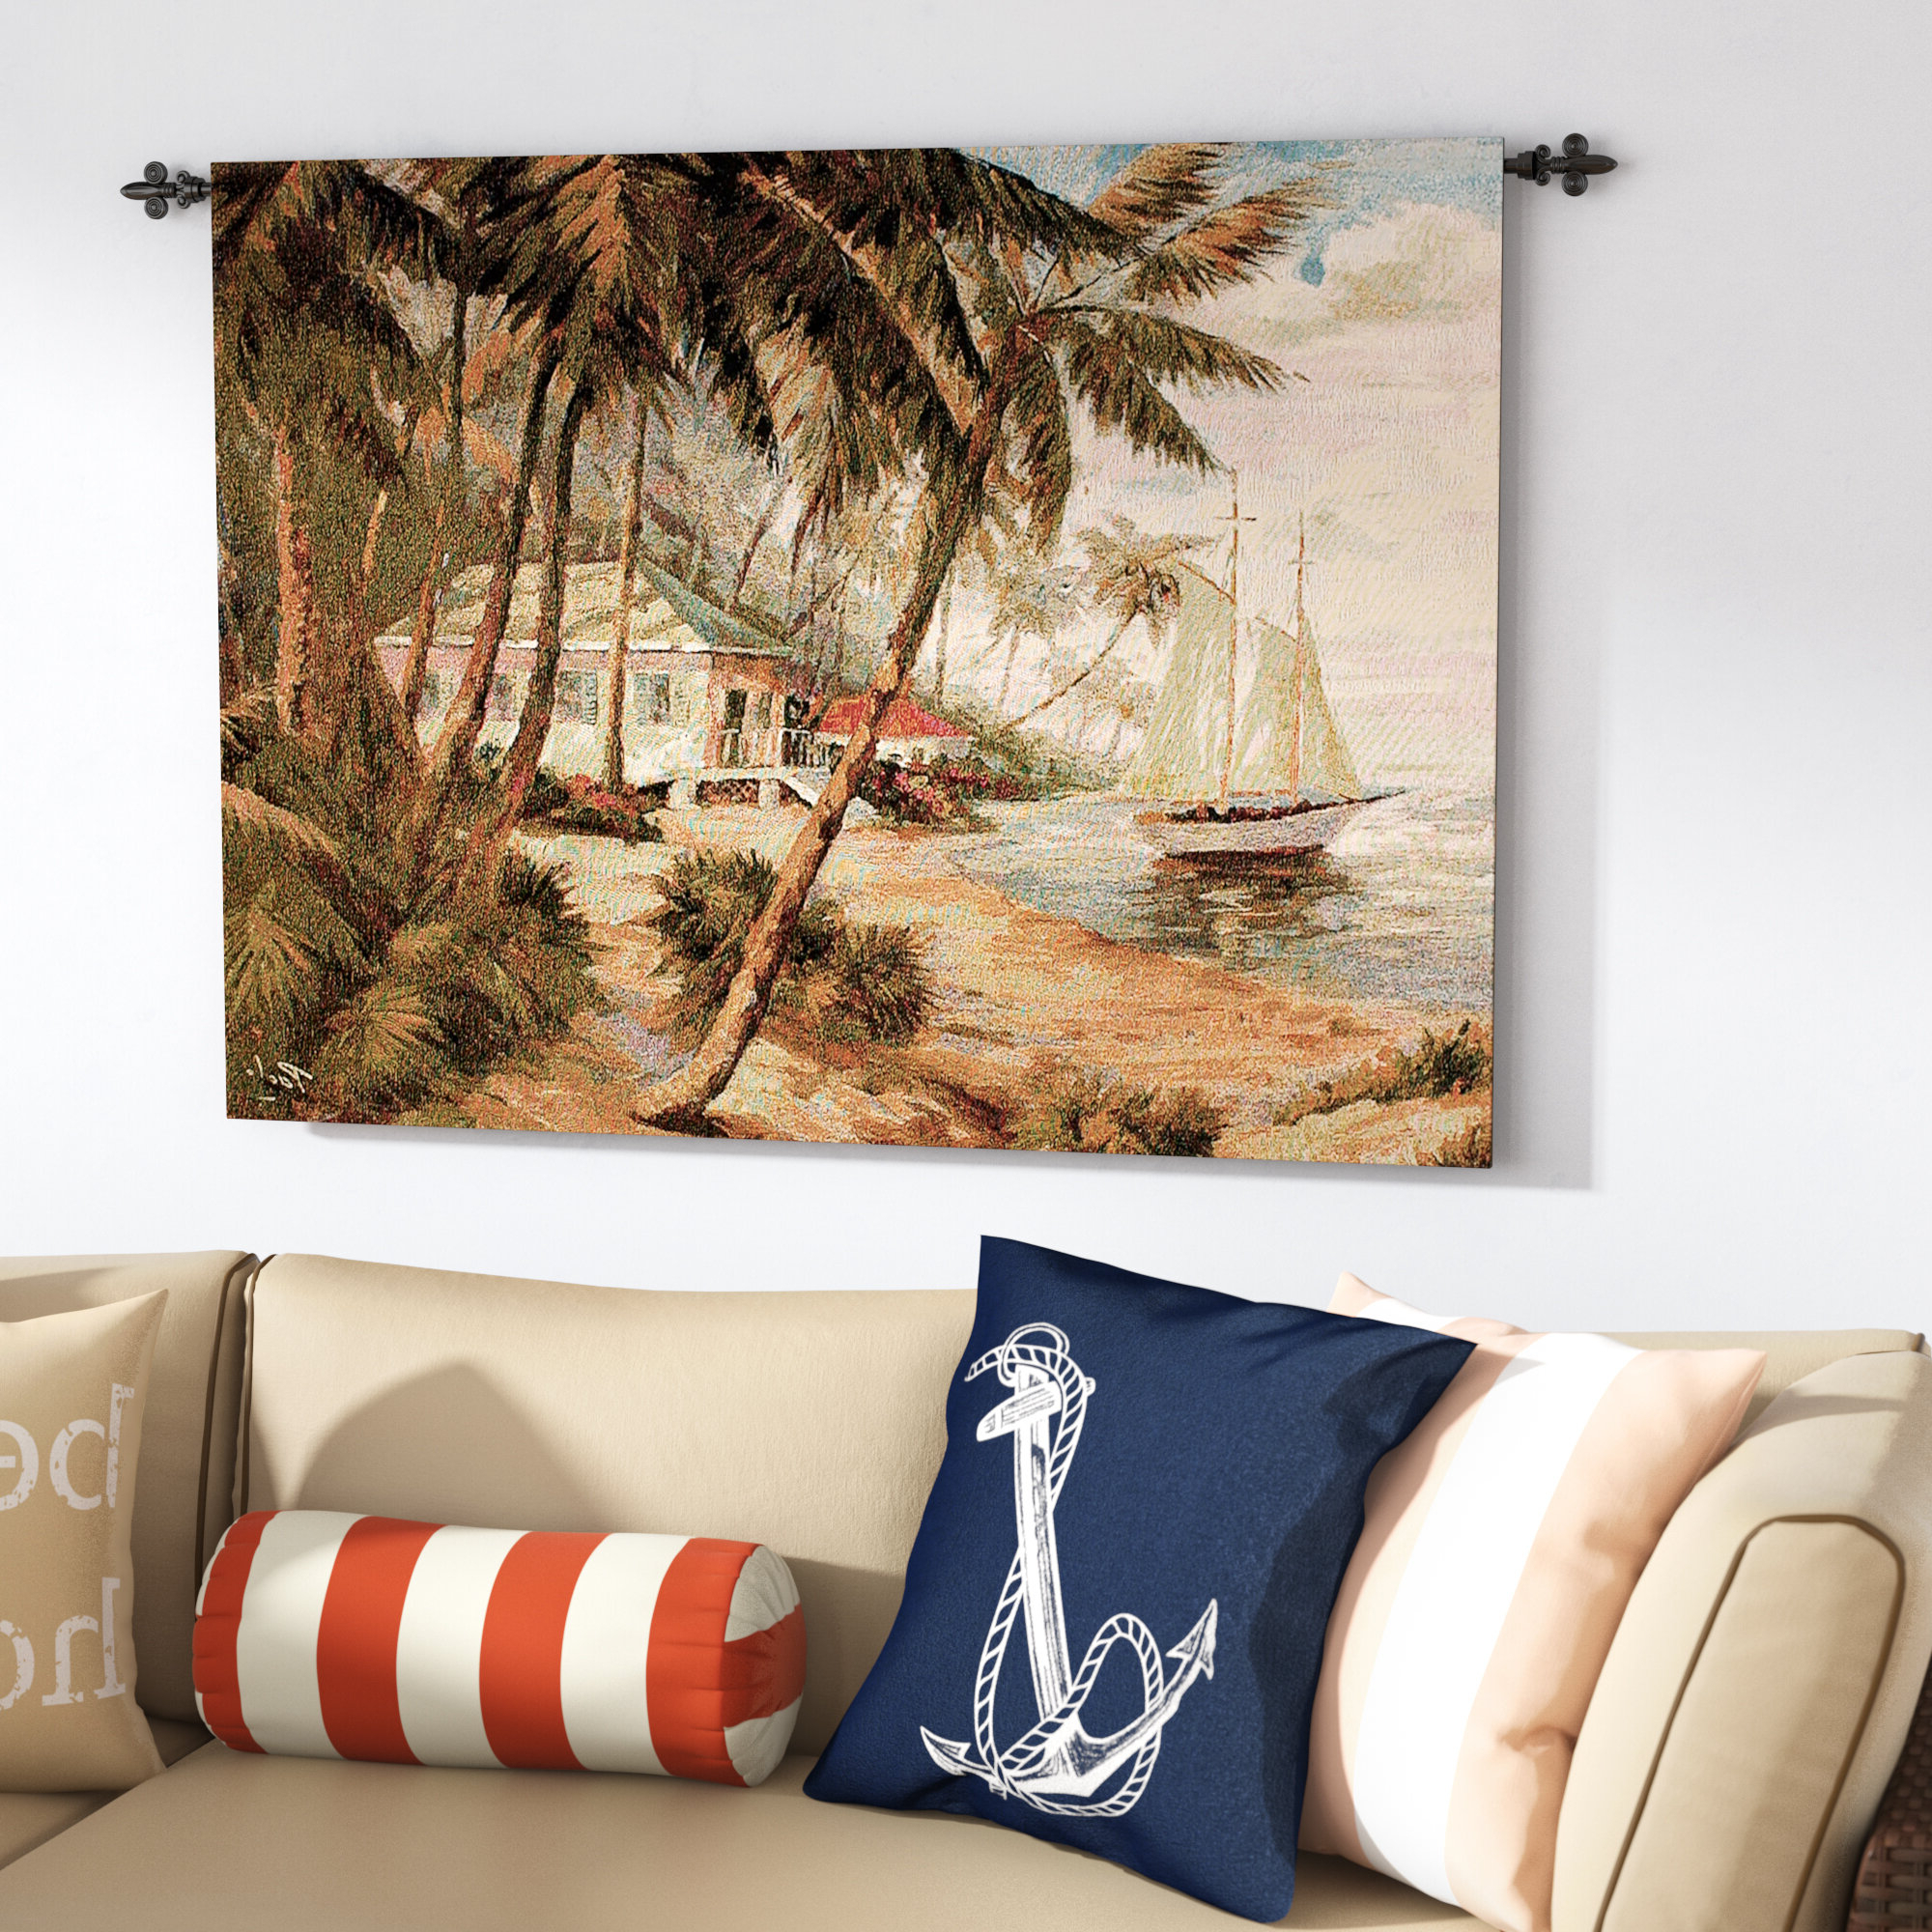 Trendy Key West Hideaway Tapestry Regarding Blended Fabric Autumn Tranquility Verse Wall Hangings (View 13 of 20)